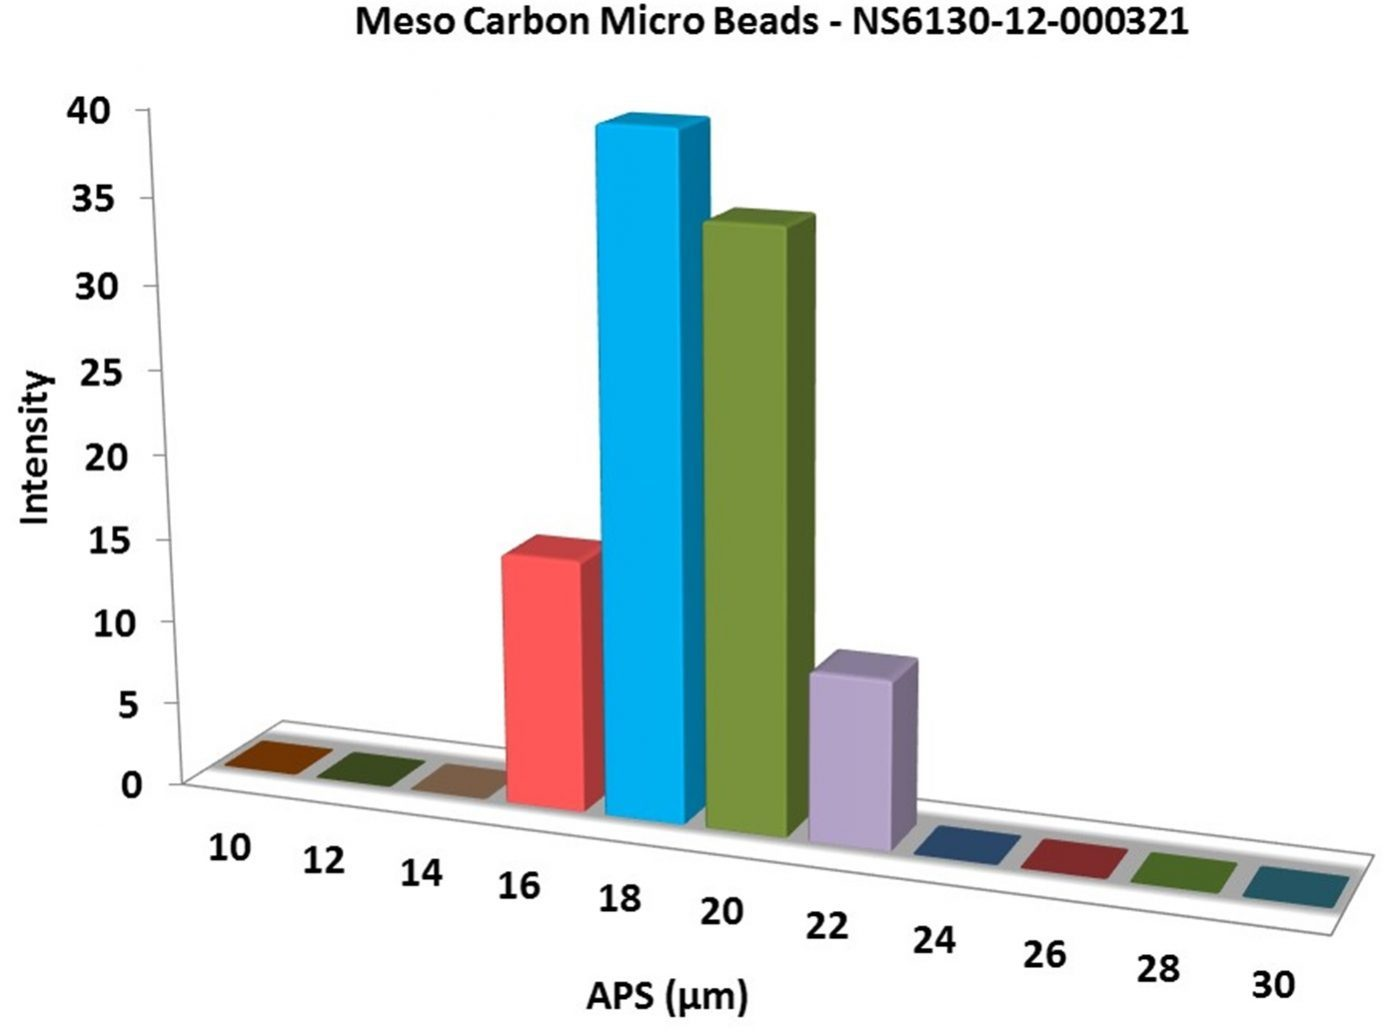 Particles Size Analysis - Meso Carbon Microbeads